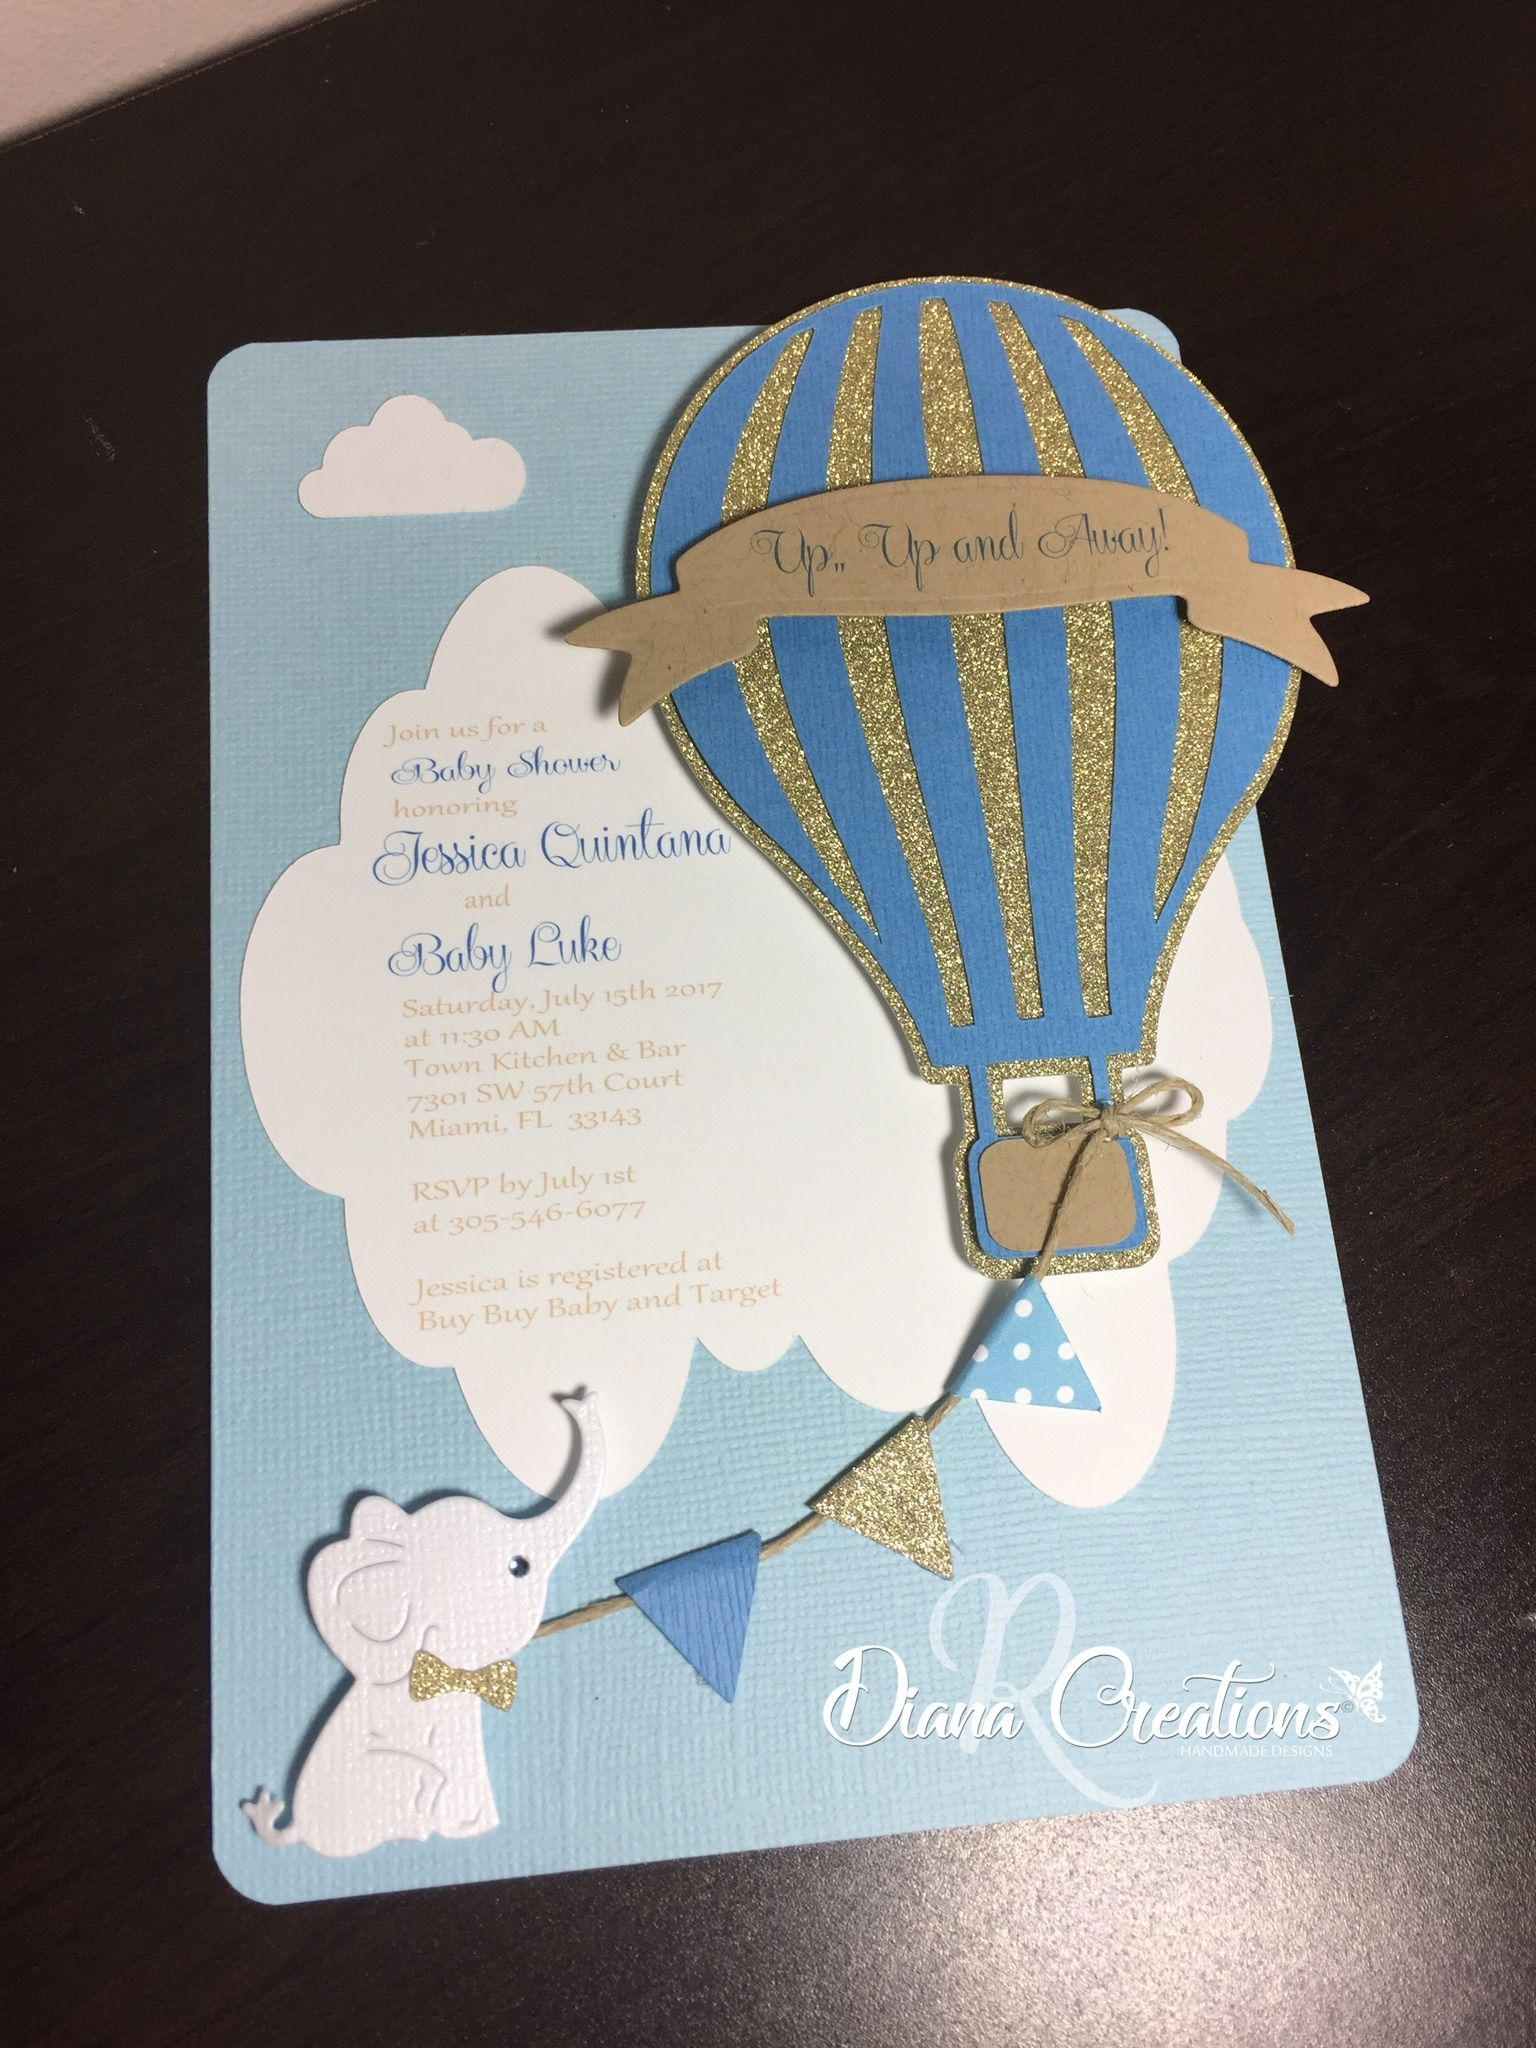 Hot Air Balloon Baby Shower With A Cute White Elephant